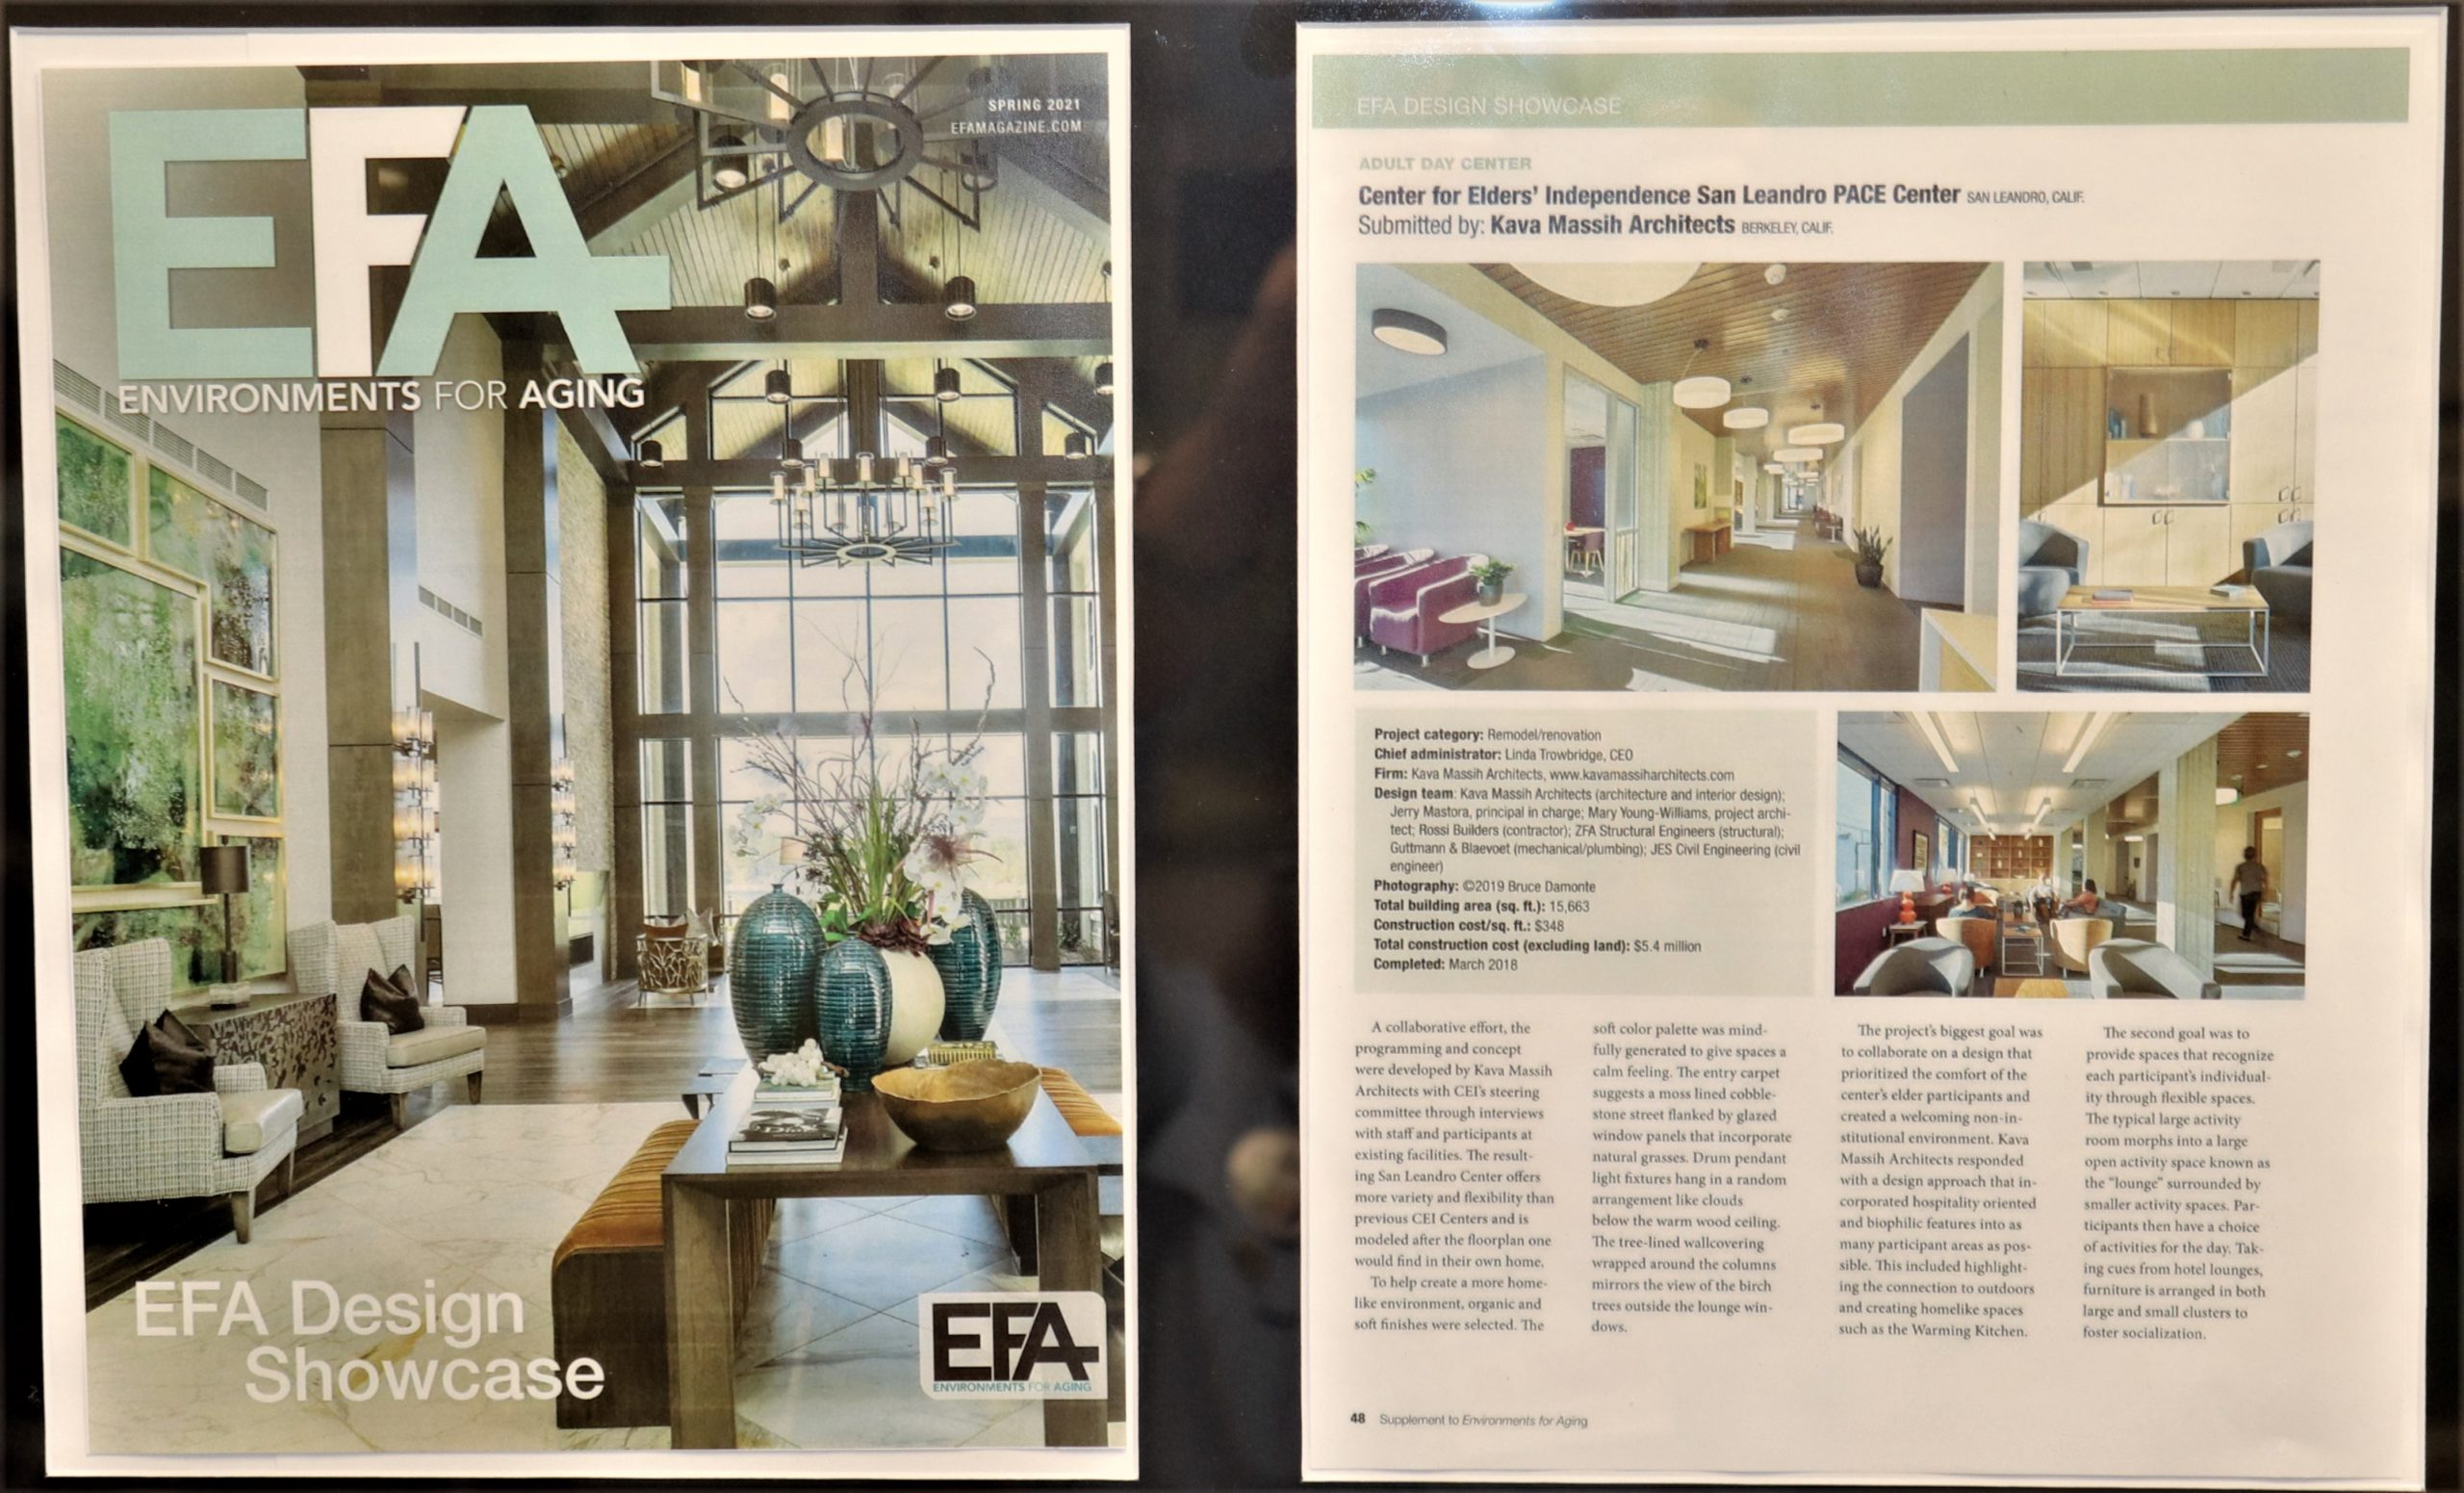 PACE San Leandro Center Honored in EFA Magazine